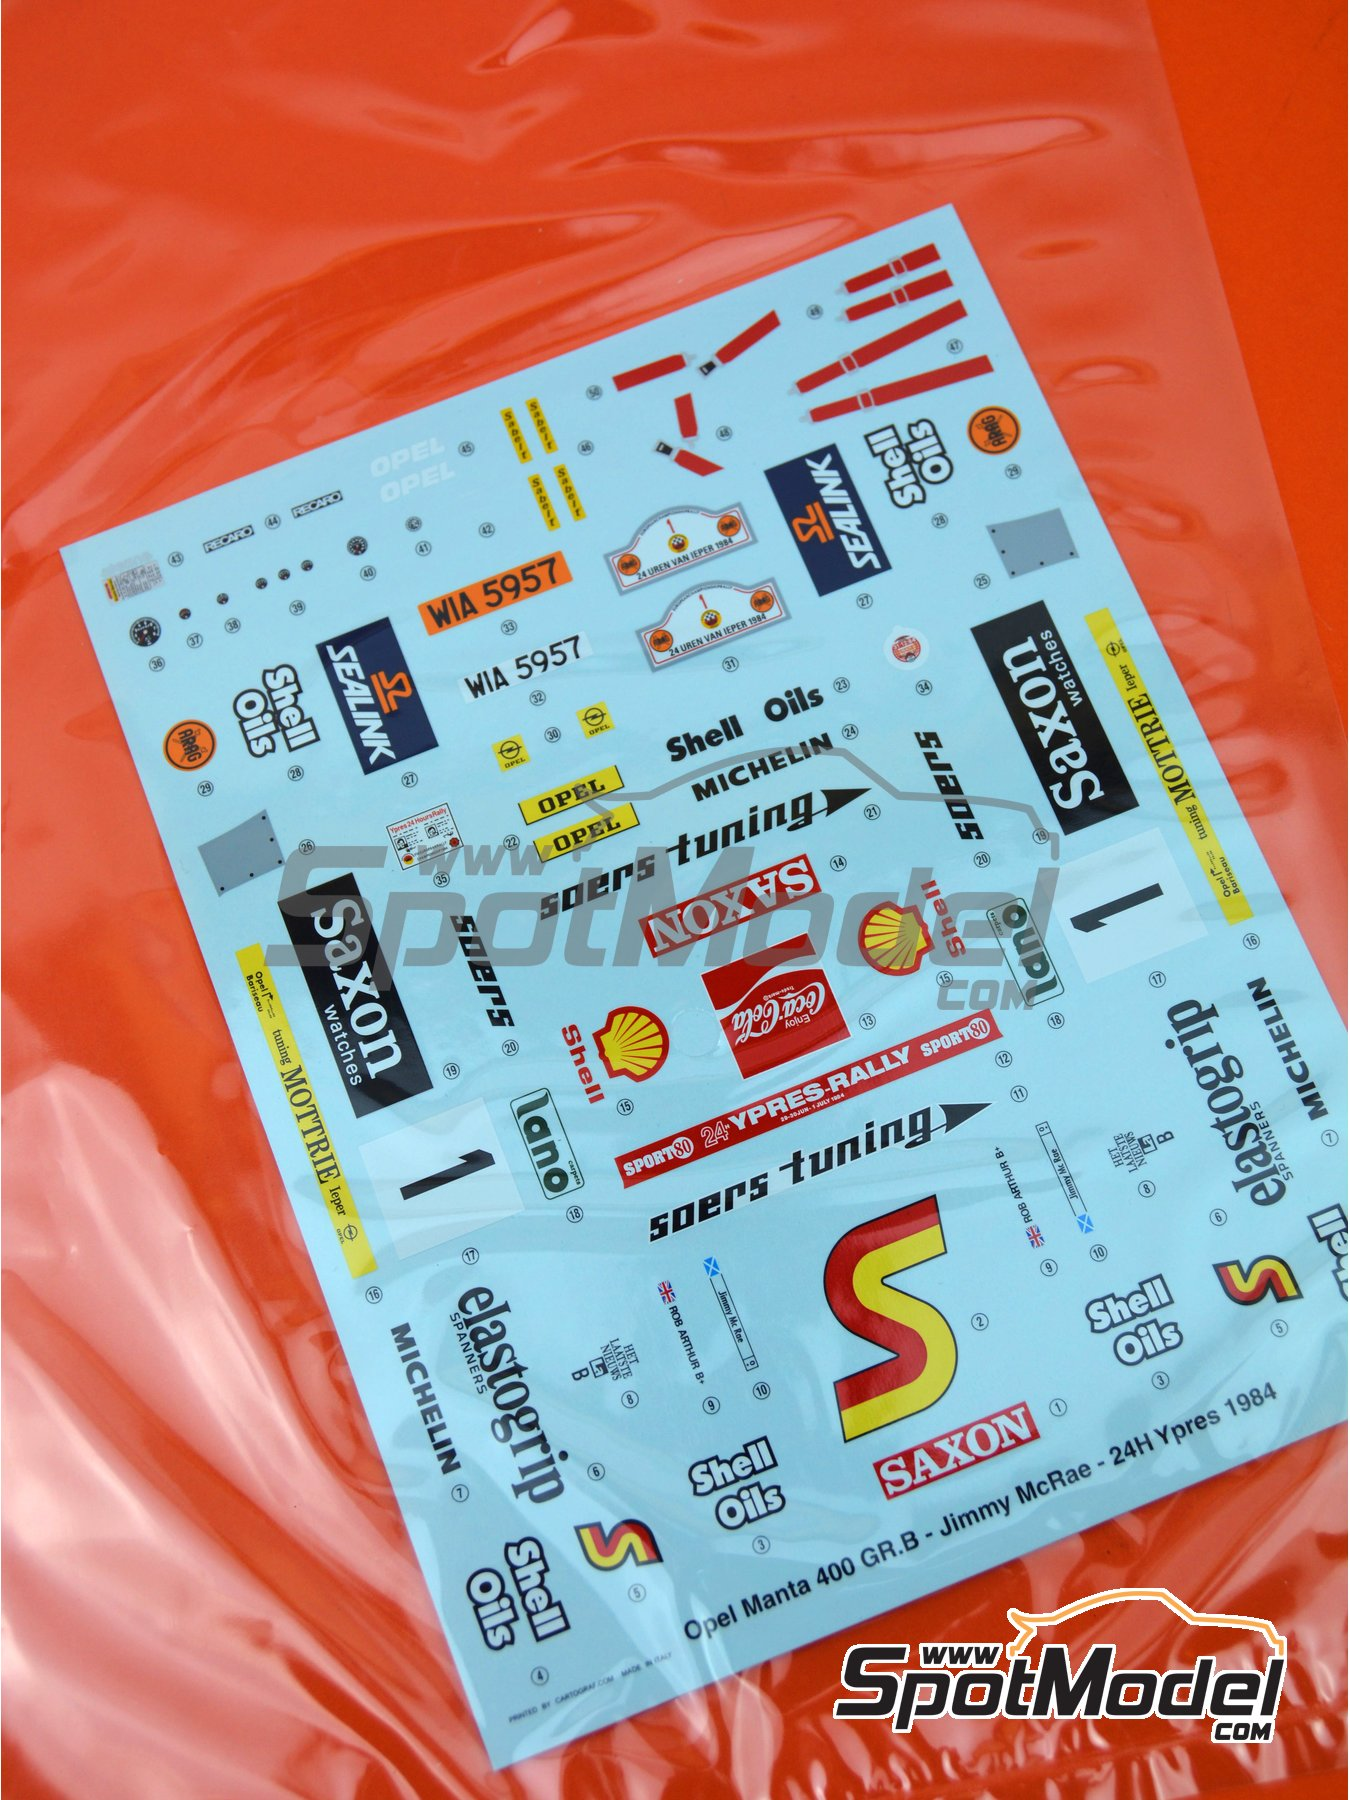 Opel Manta 400 Group B: Decal - 24 Hours de Ypres Rally 1984 | Spare part in 1/24 scale manufactured by Belkits (ref.BEL009-DECAL) image